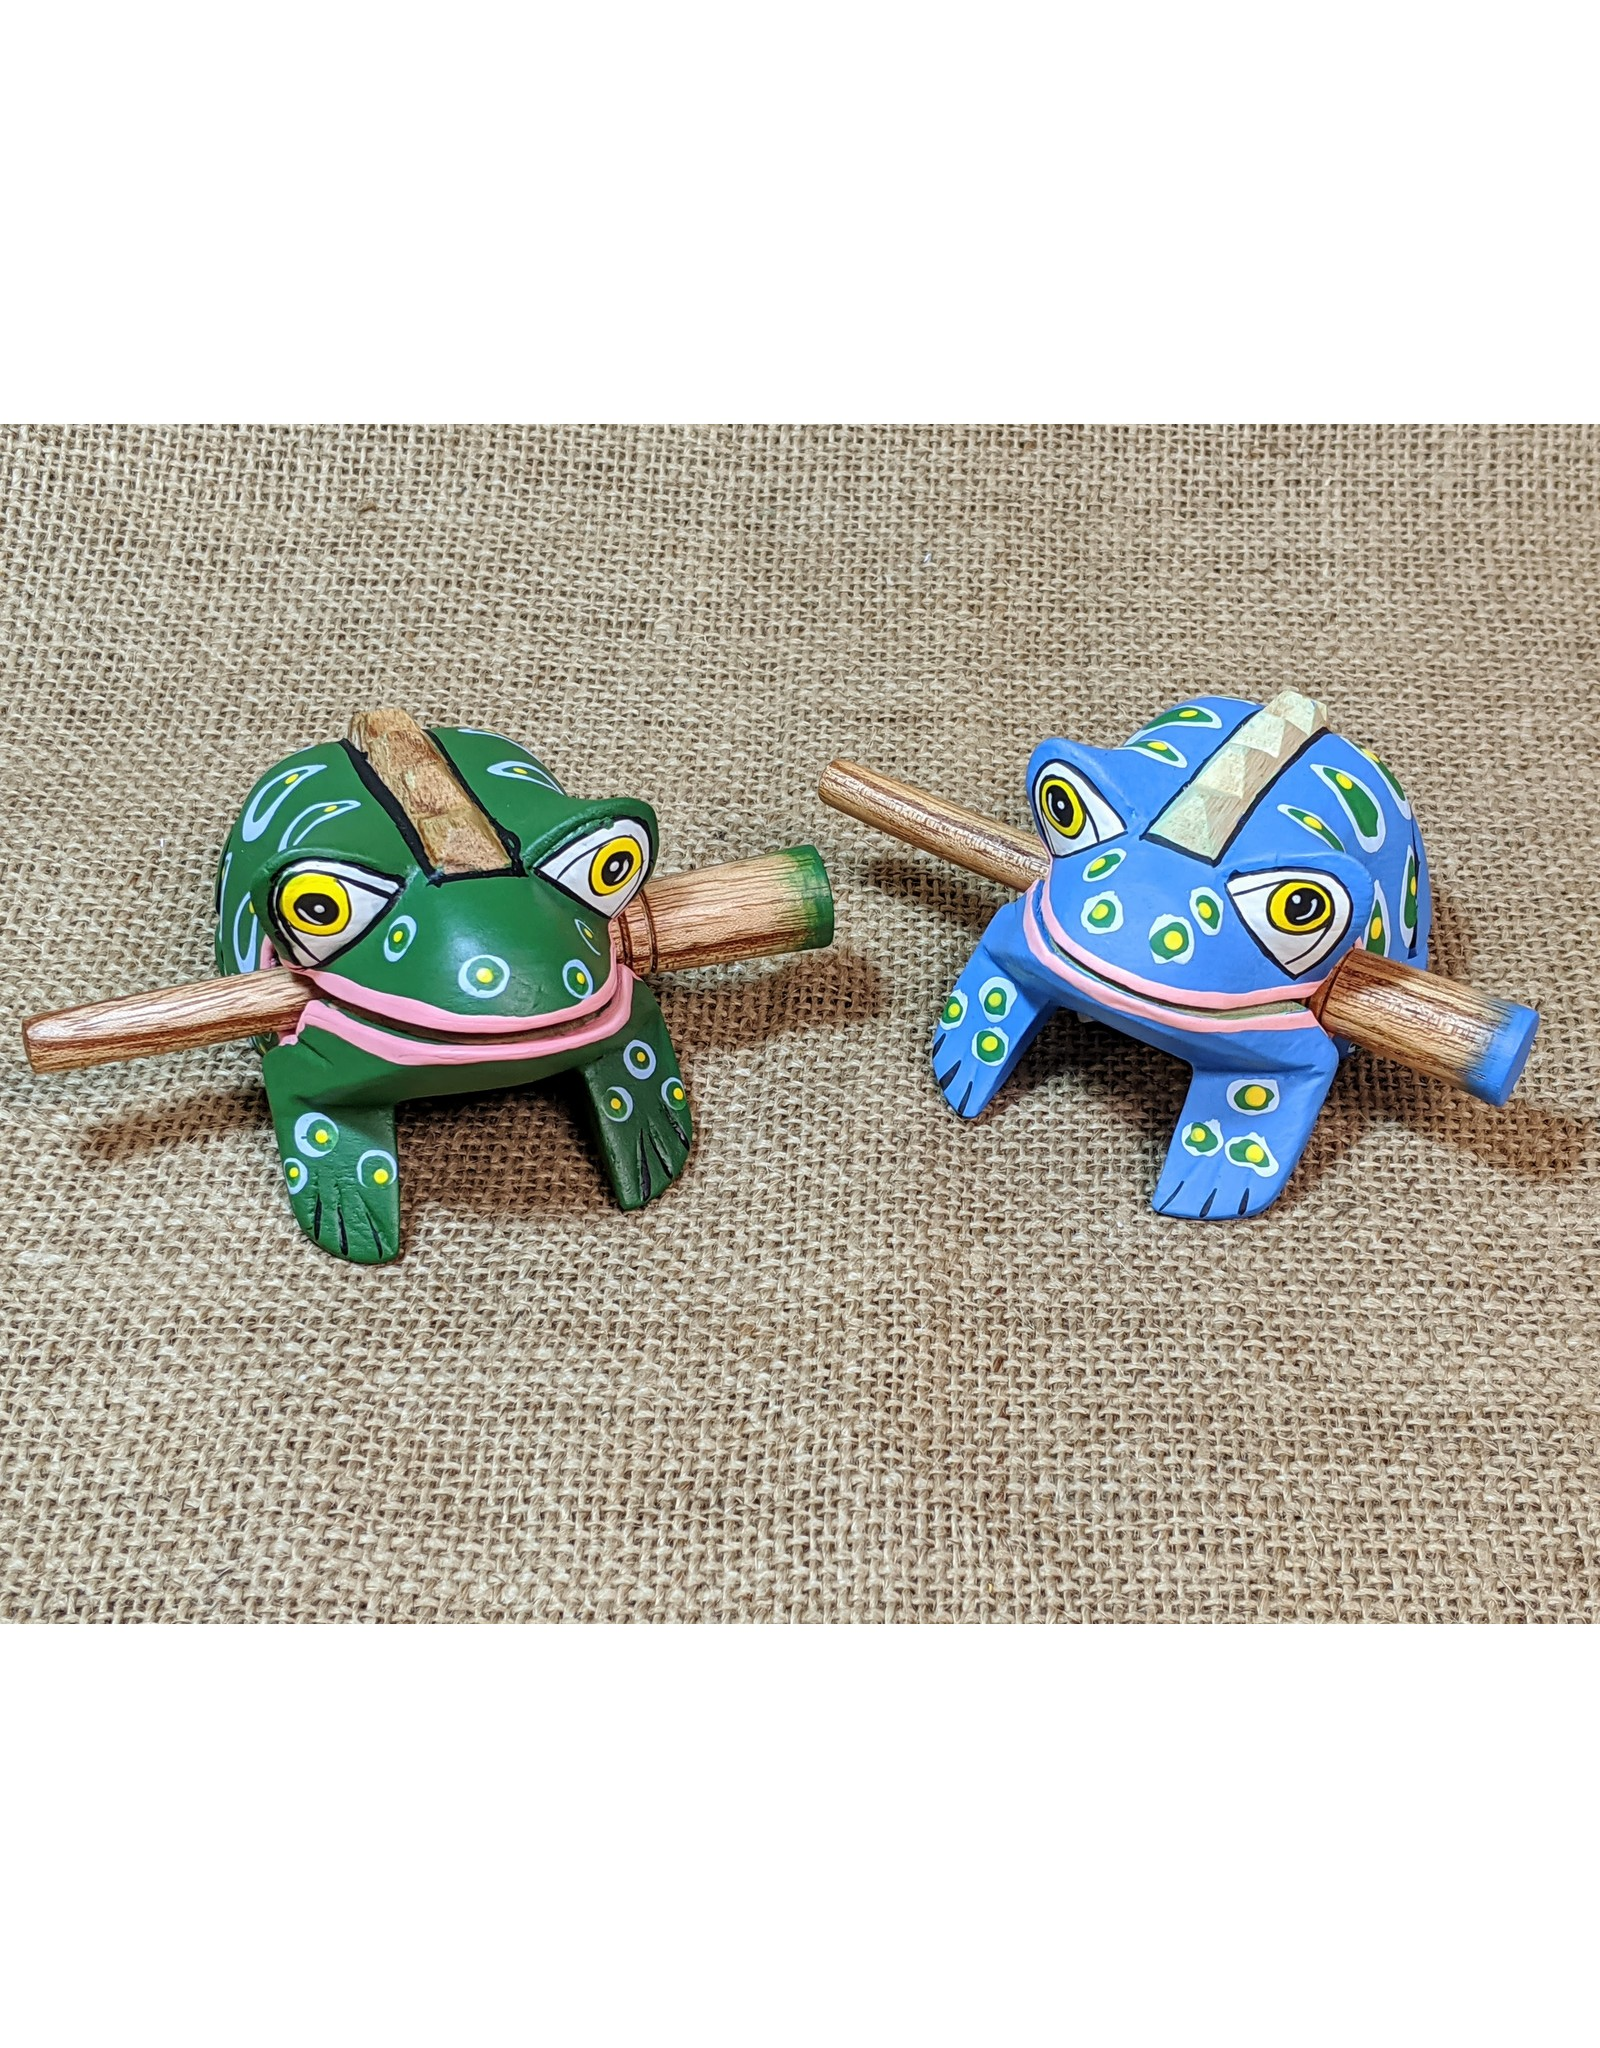 Ten Thousand Villages Frog Scraper